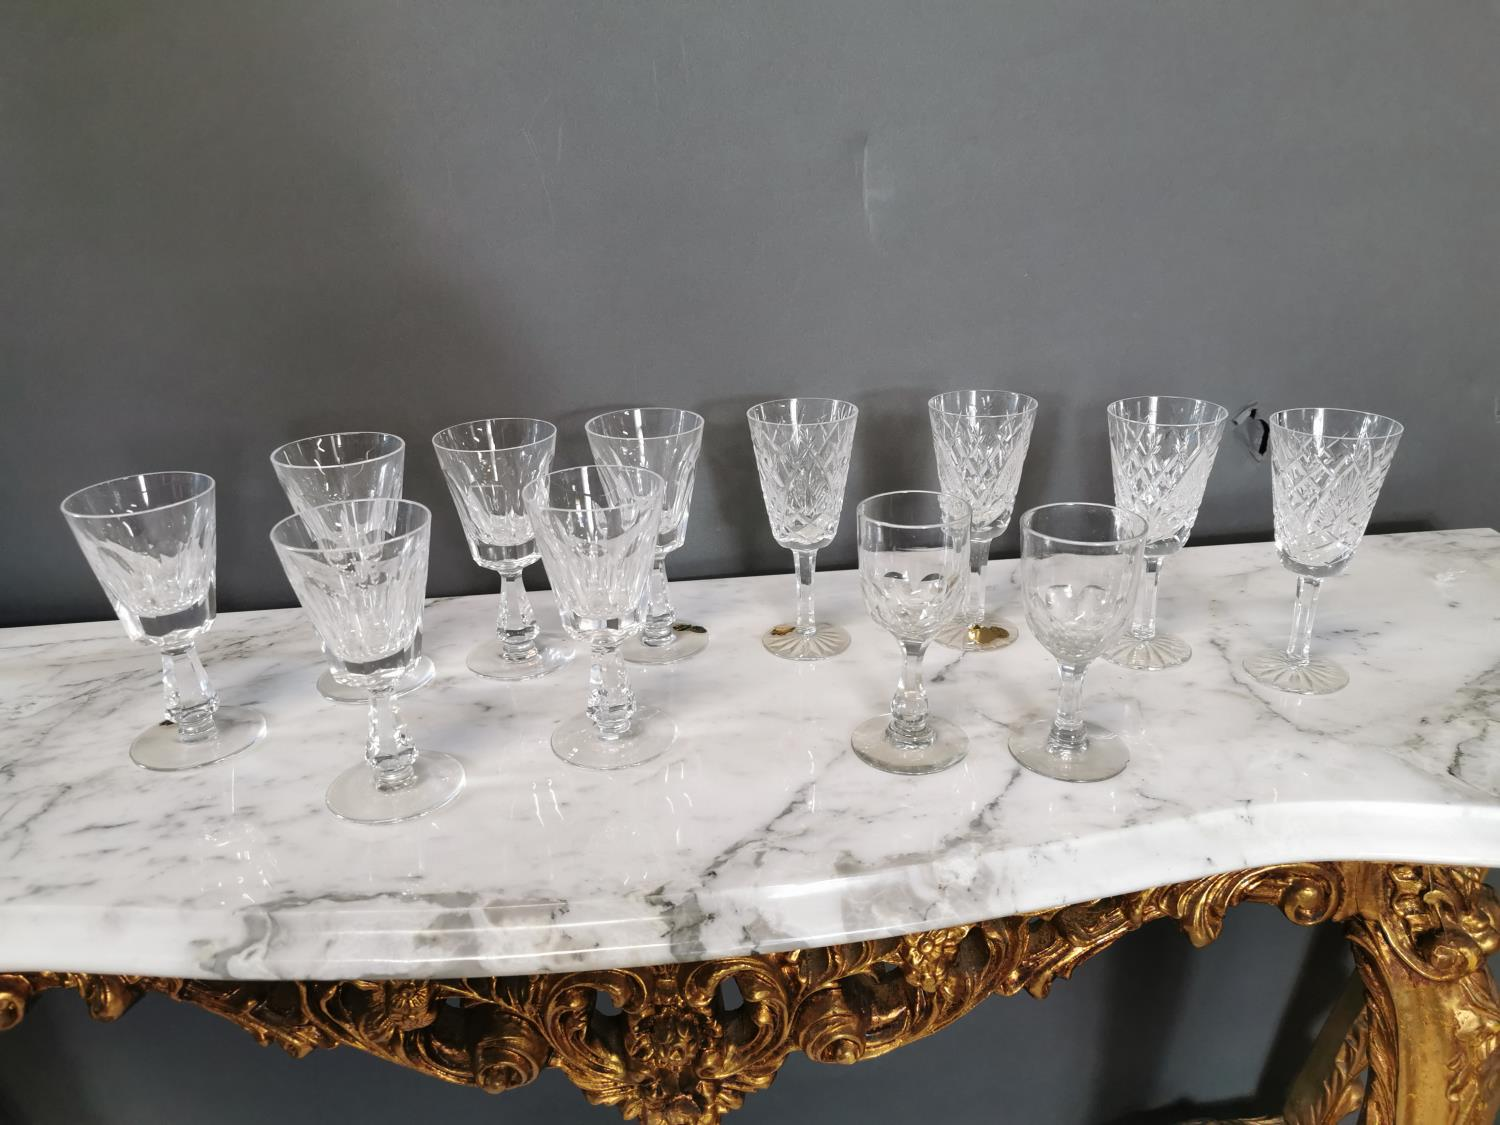 Ten Waterford crystal sherry glasses